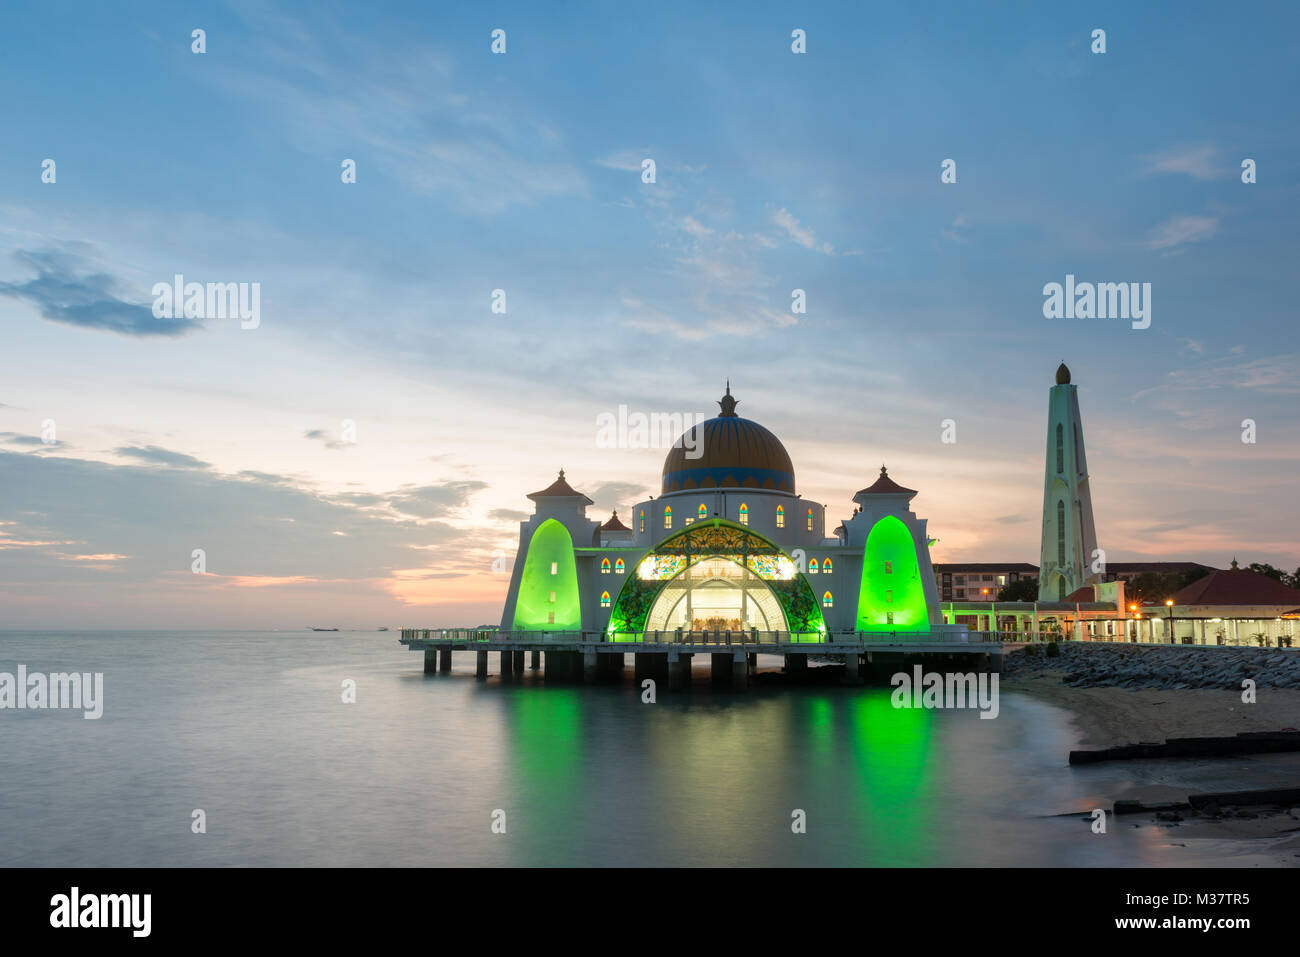 Image Result For Islam In Malaysiaa